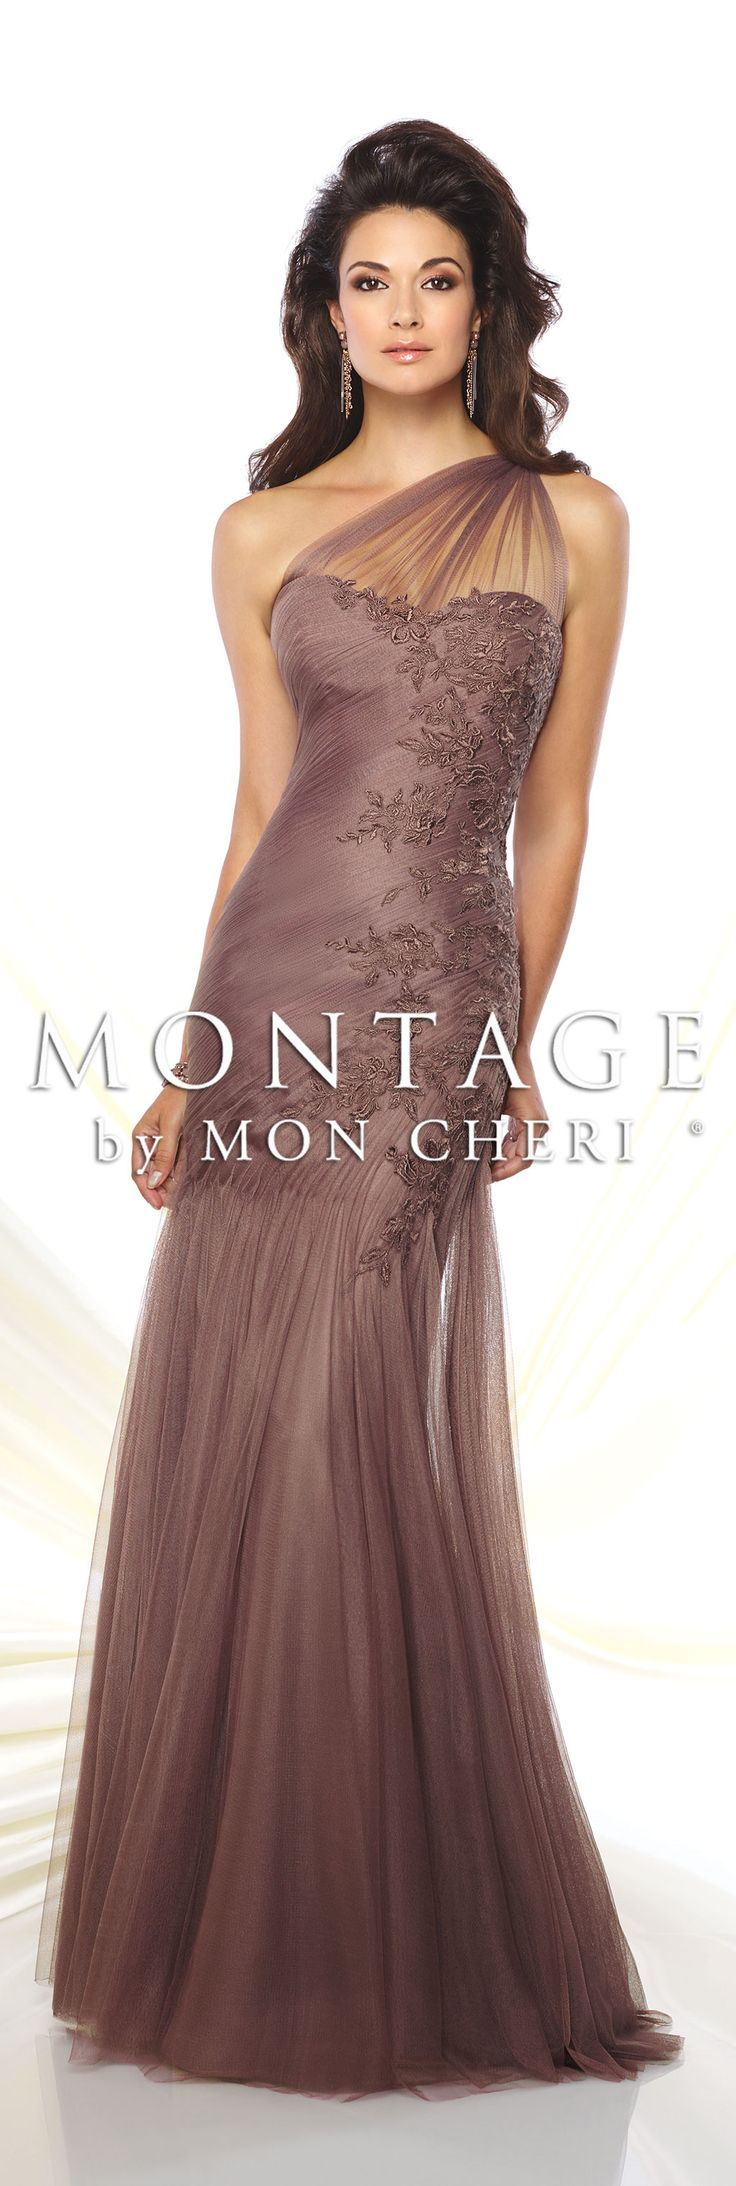 Montage by Mon Cheri Spring 2016 - Style No. 116954 #